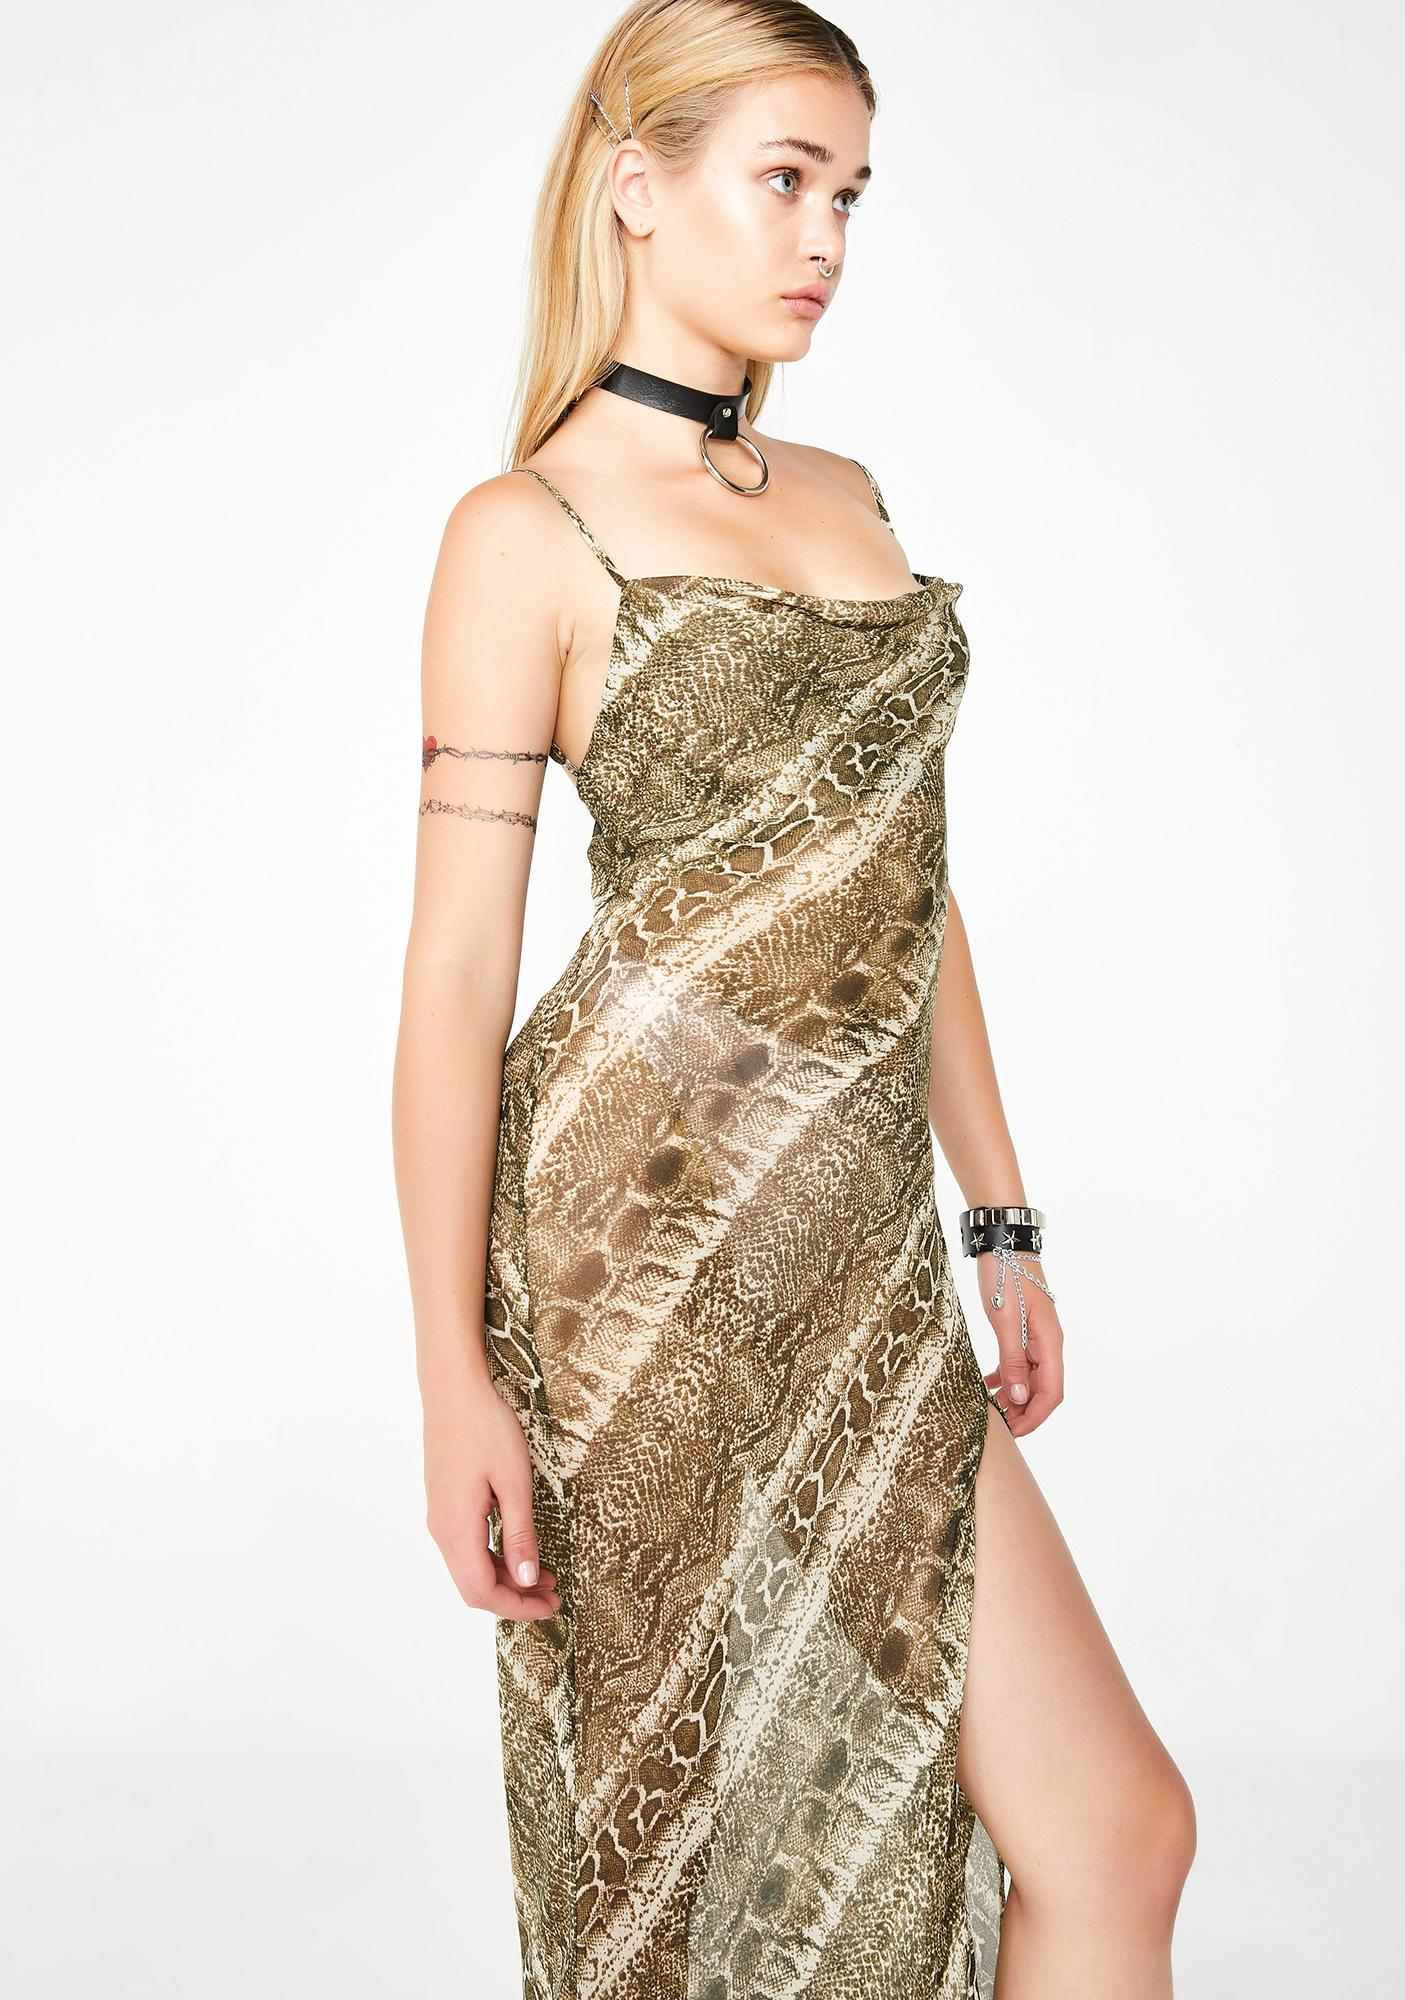 See through mesh snakeskin spaghetti strap evening dress